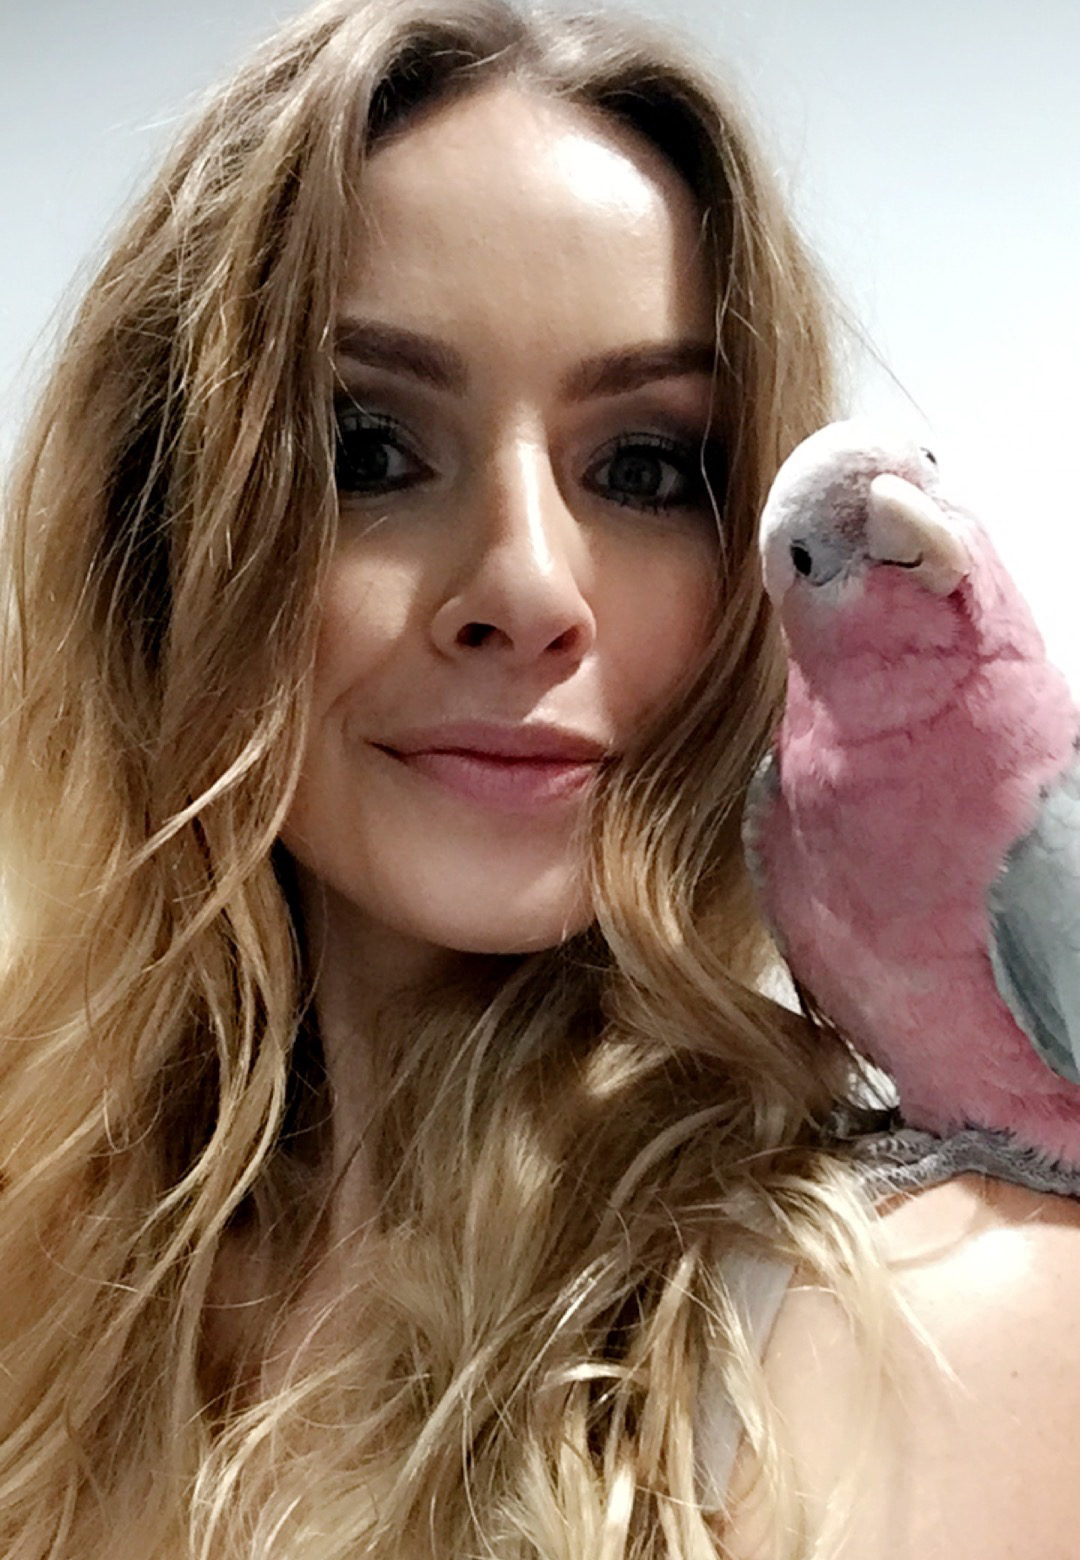 Thor the Pink & Grey Galah Cockatoo - Australian Perth Blogger Katie Rebekah.jpg